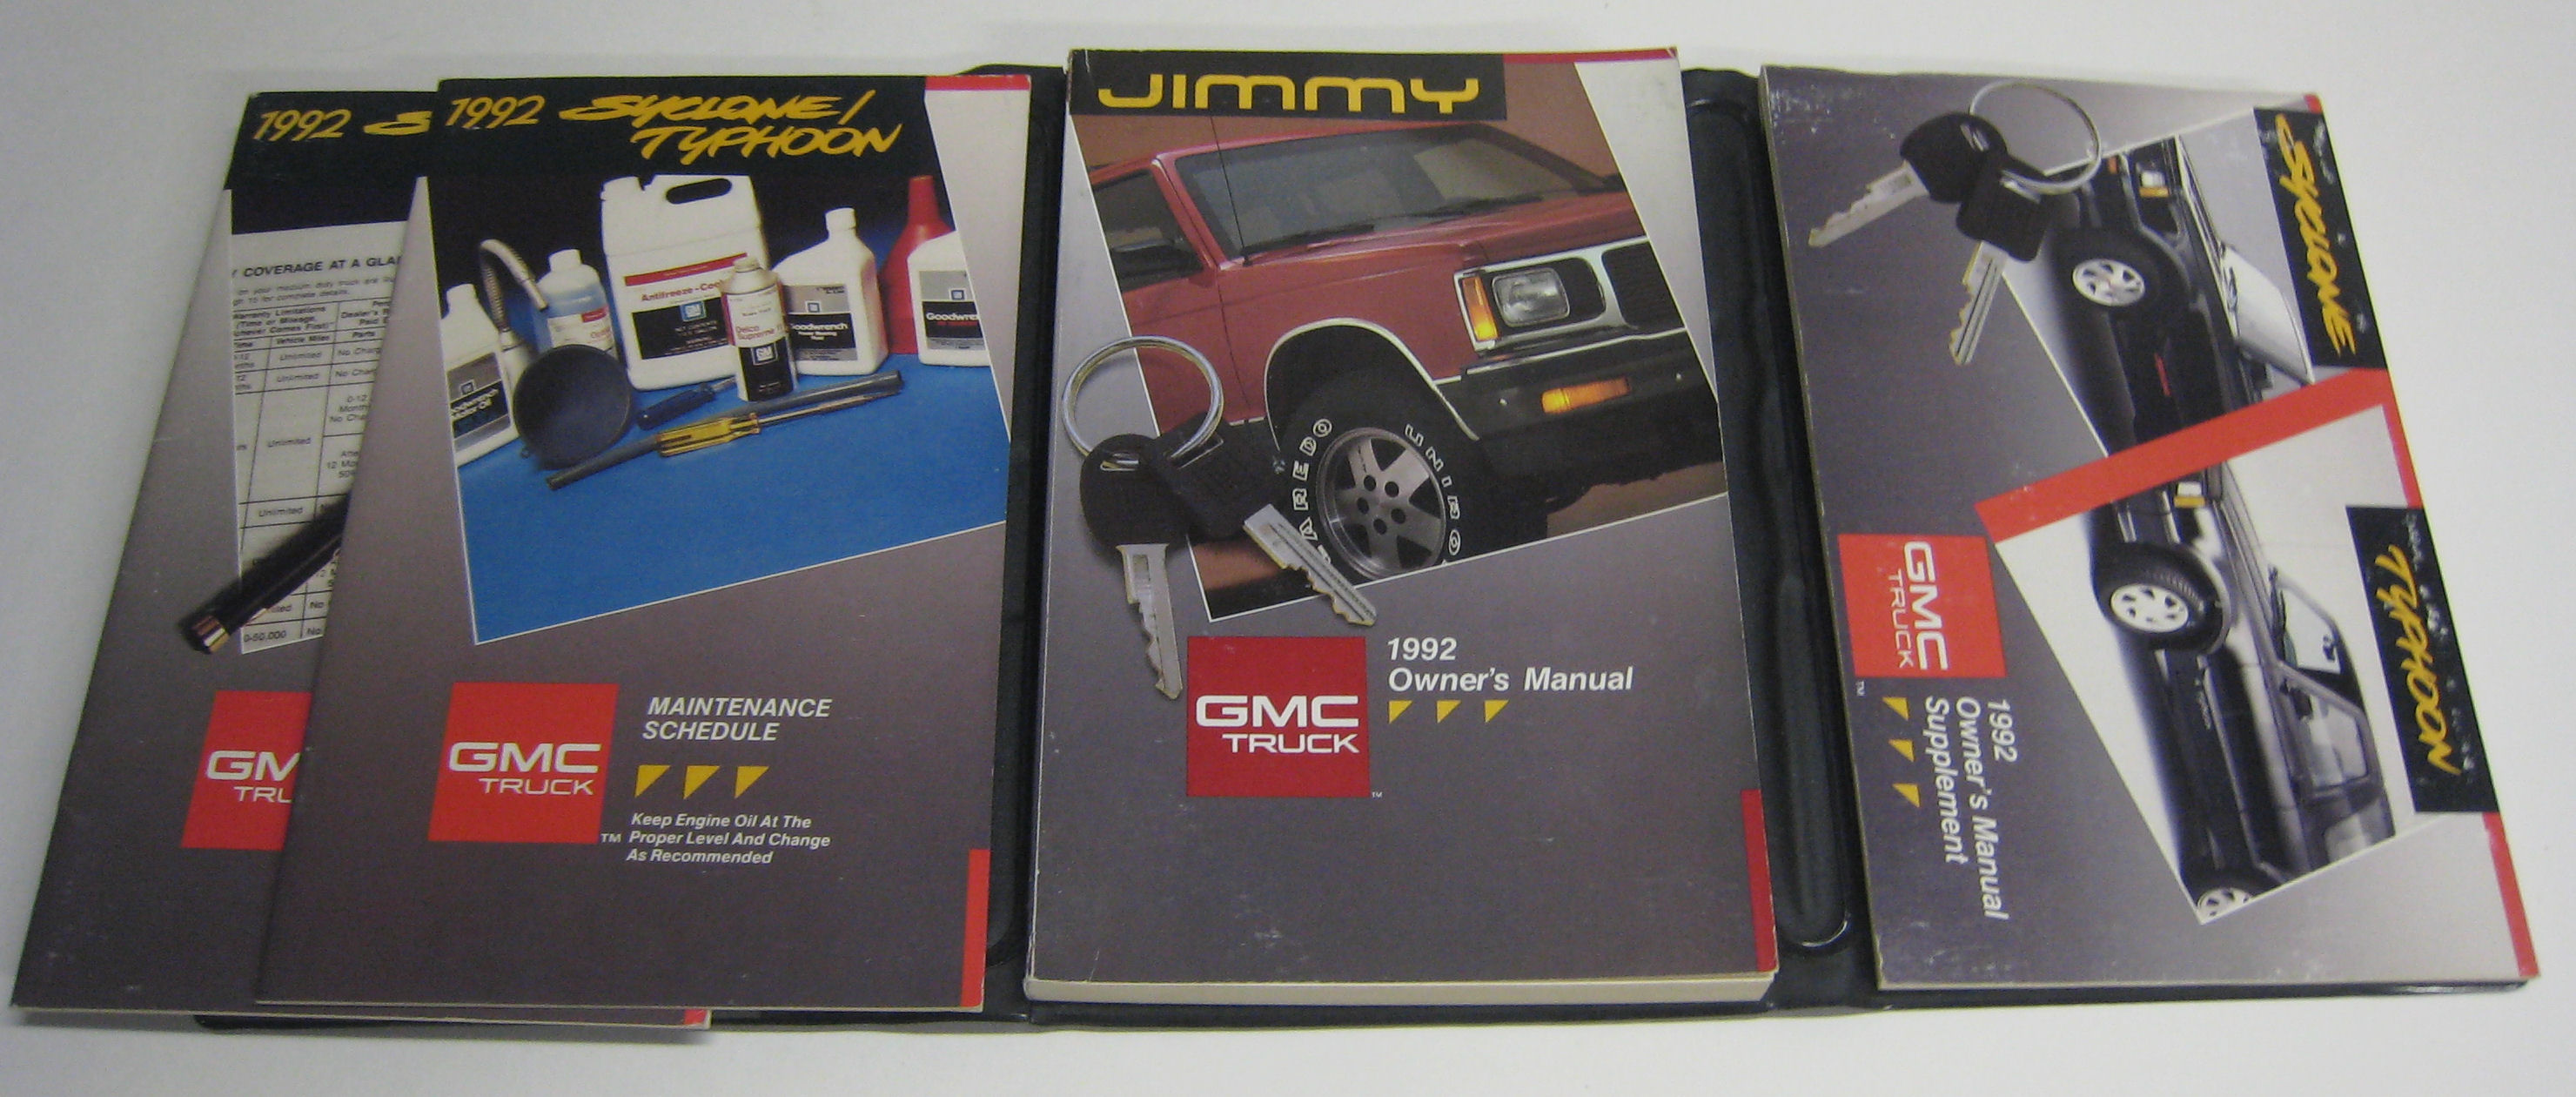 1991 GMC Syclone used Owners Manual $150.00.